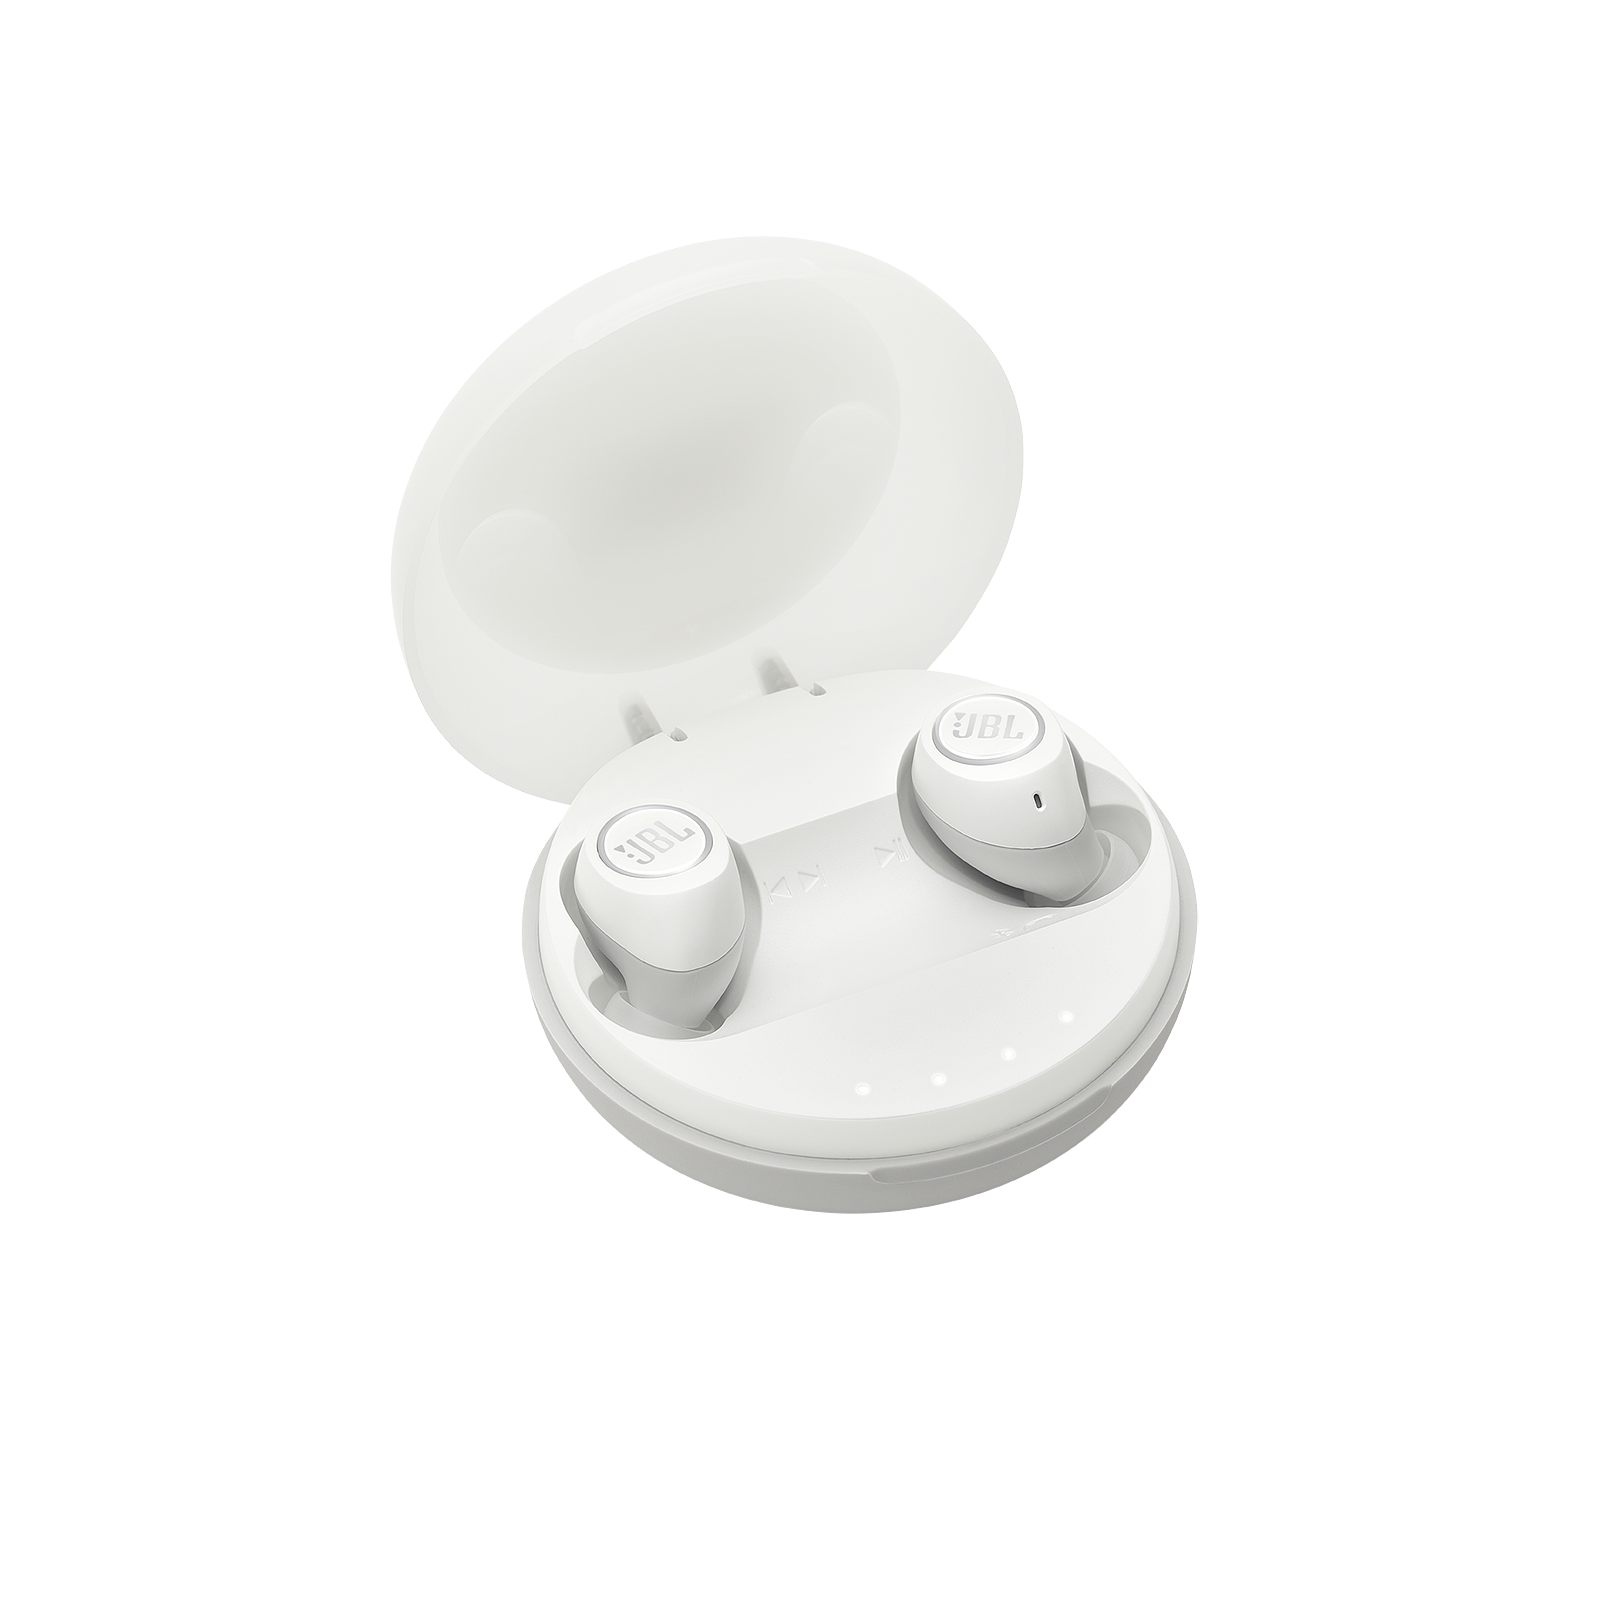 JBL Free X - White - Truly wireless in-ear headphones - Detailshot 1